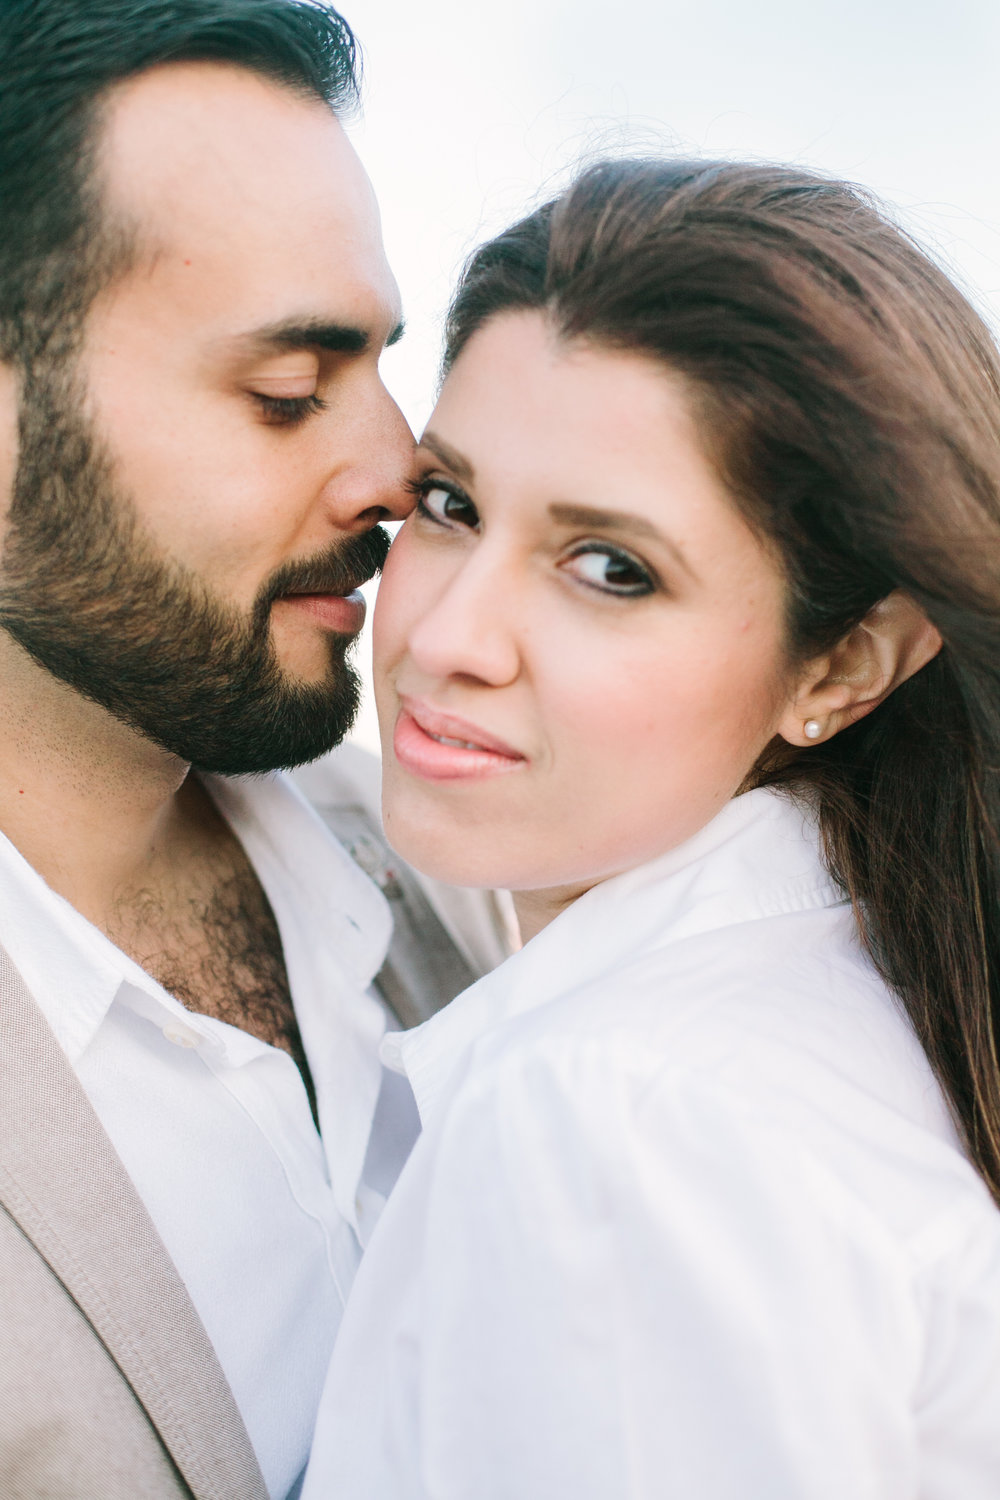 marin-headlands-engagement-session-luis-cecilia-03.html